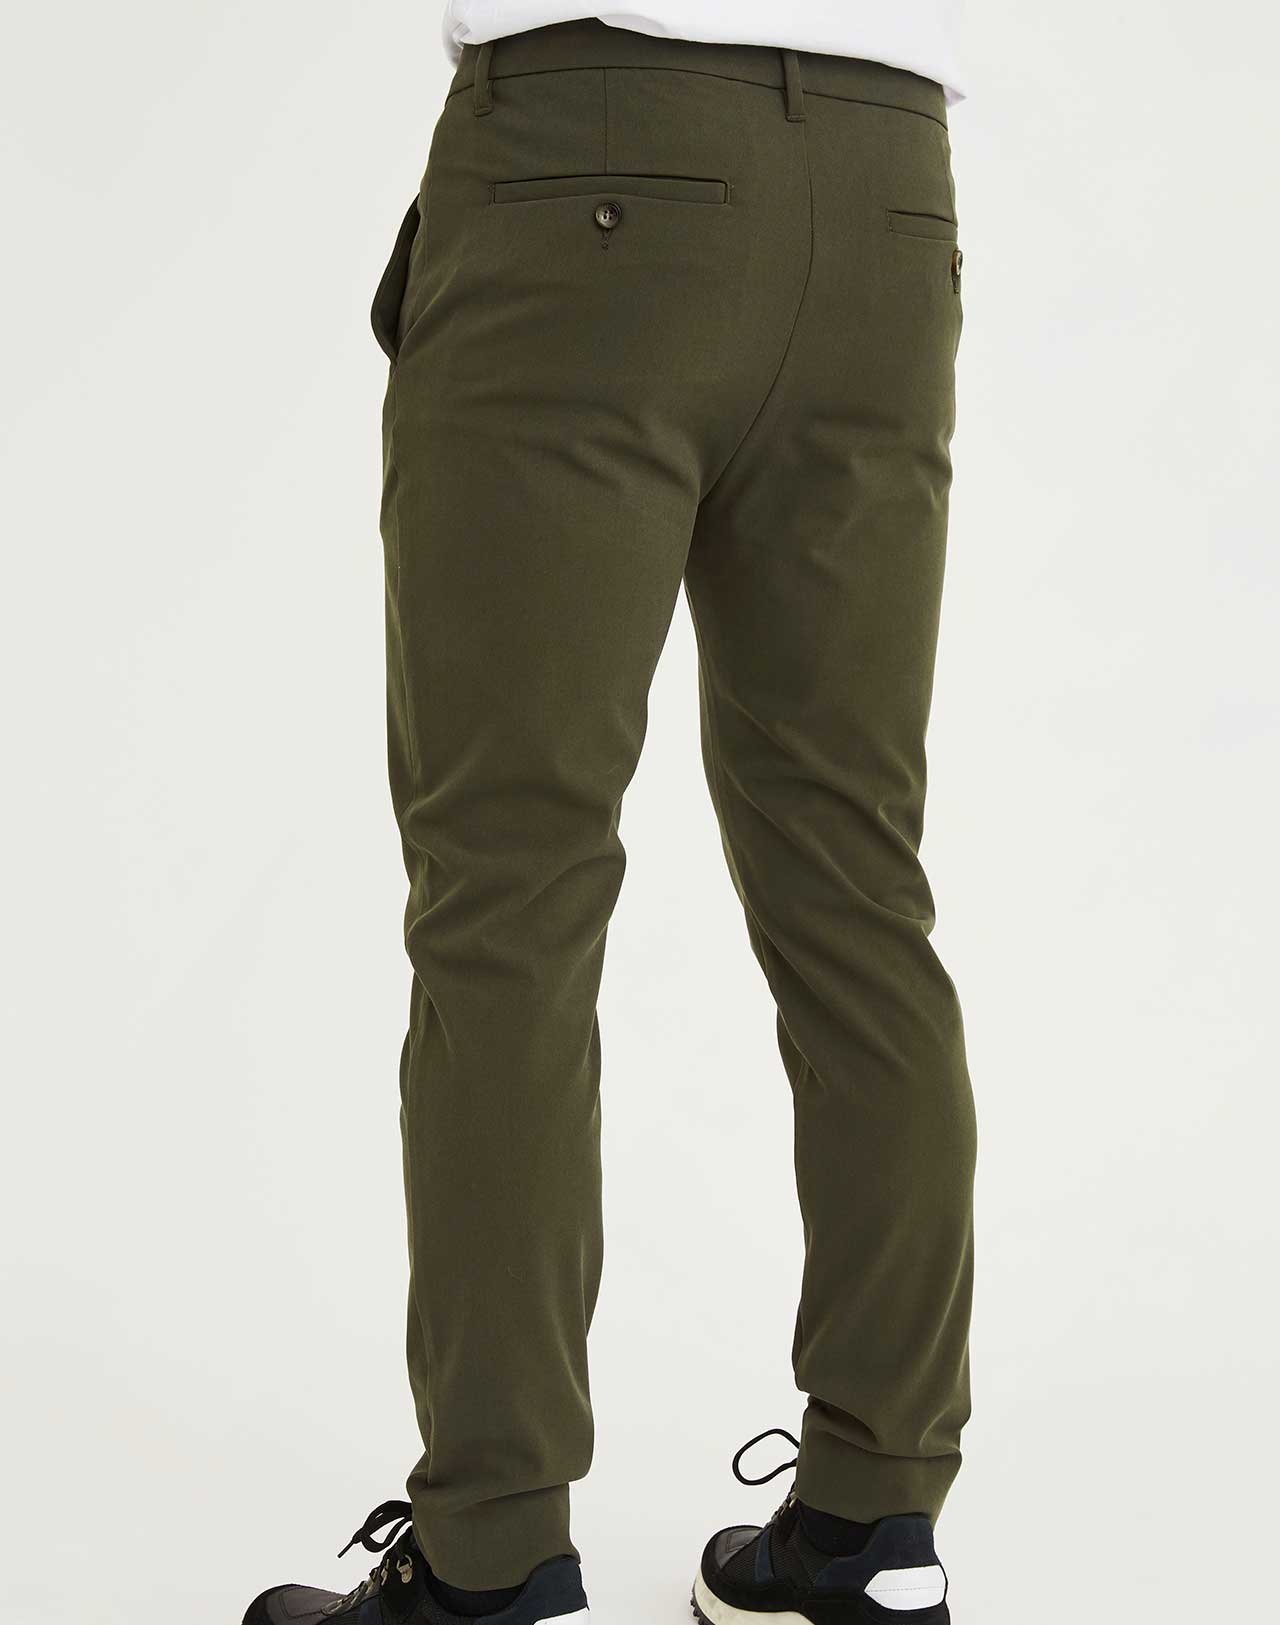 Pantalon Josh Army Plain Units de dos